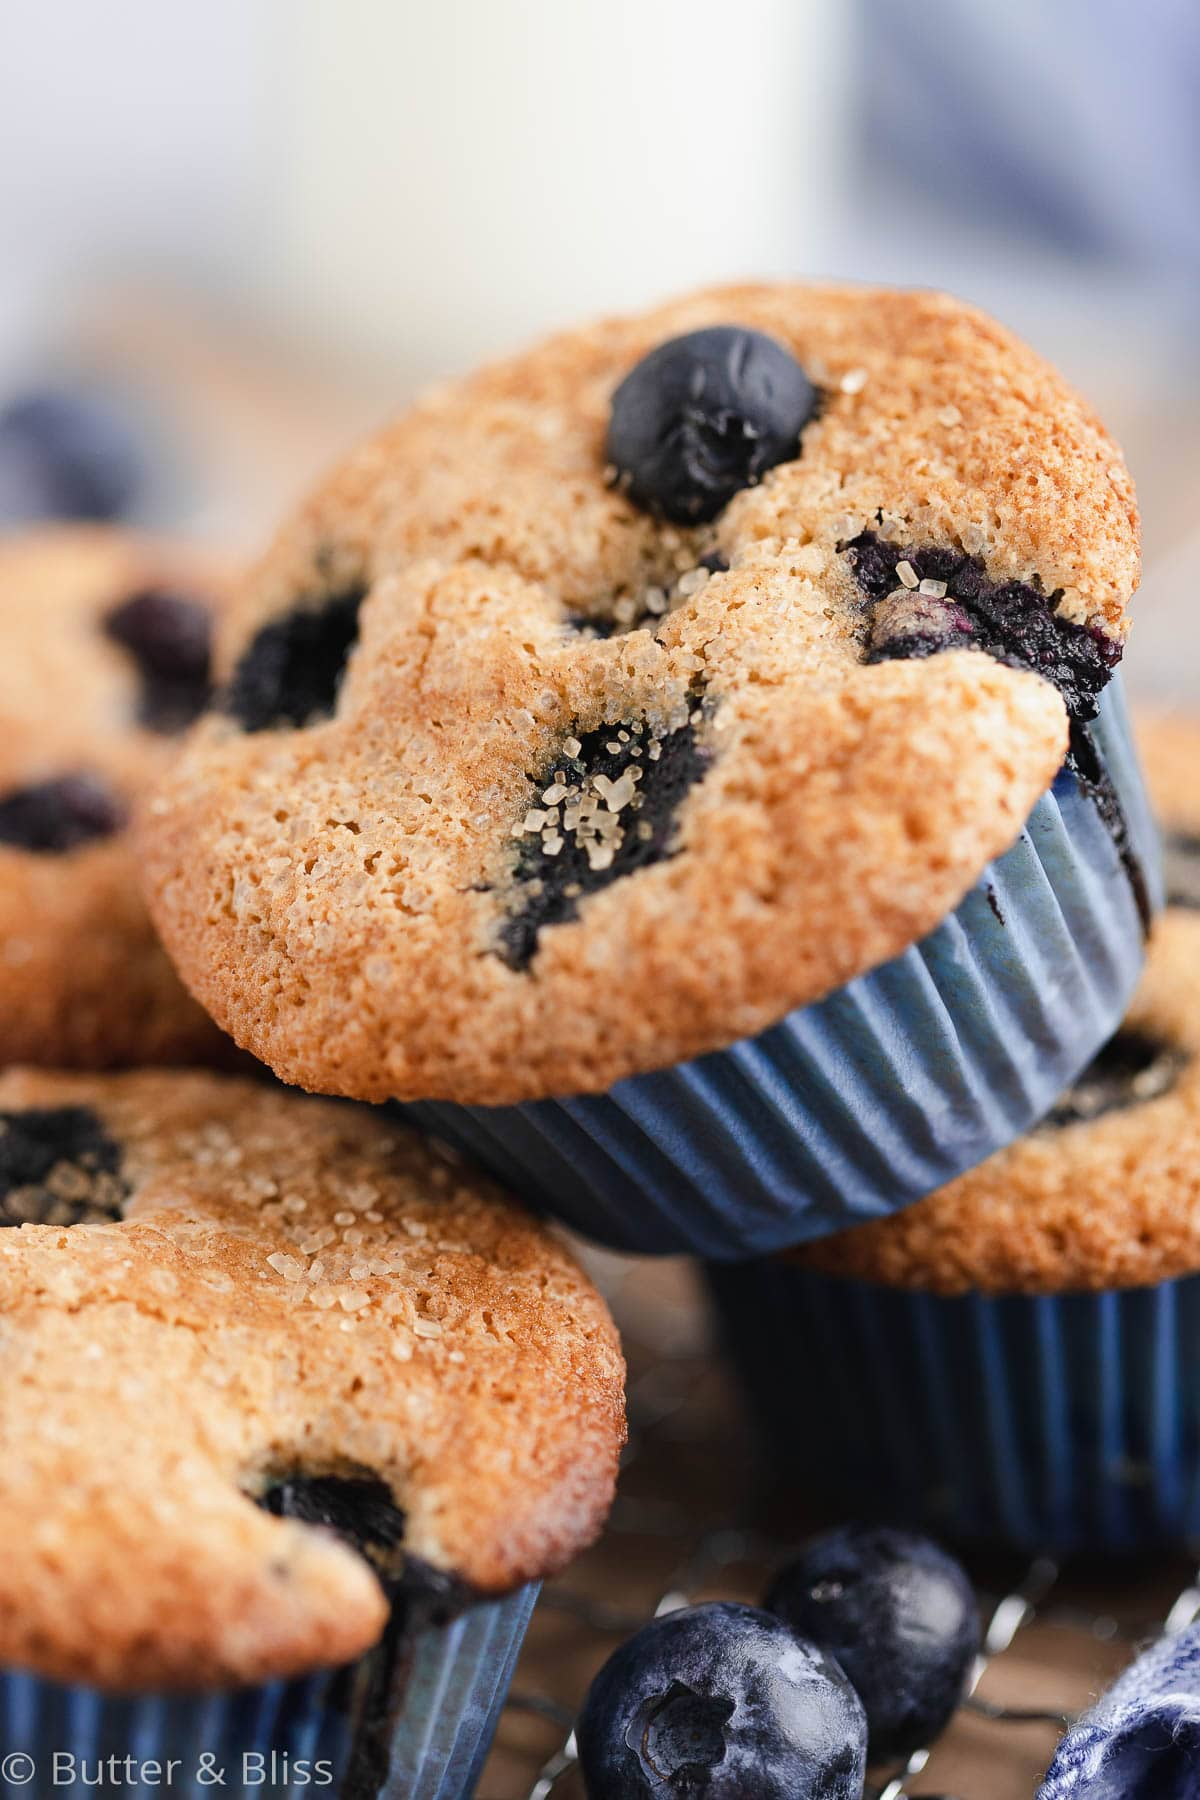 Close up of a gluten free blueberry muffin